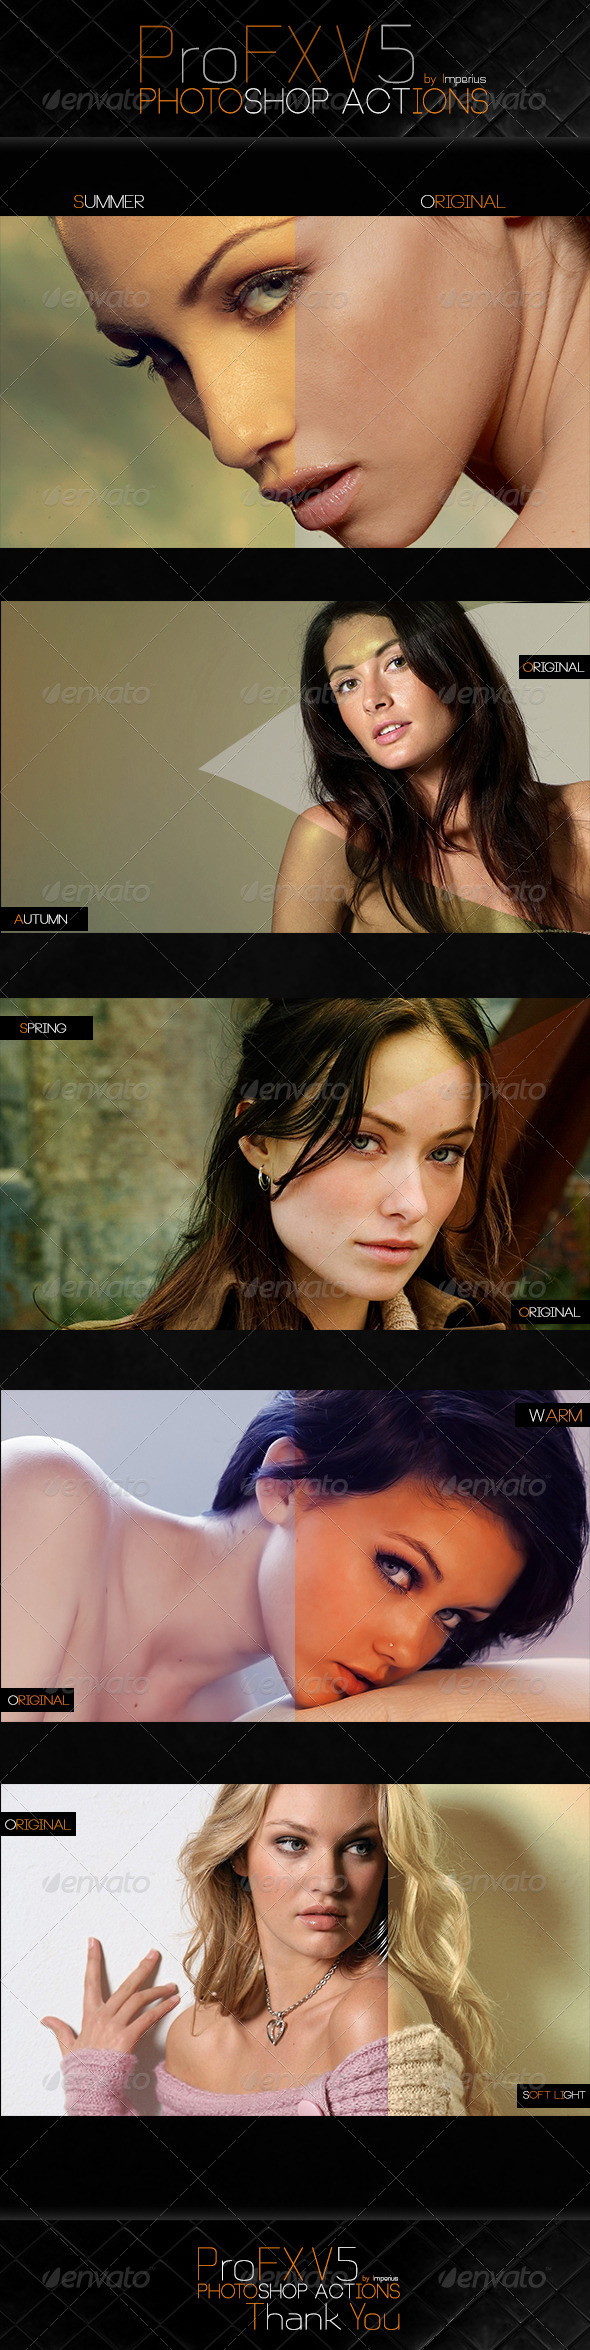 ProFX V5 Actions - Actions Photoshop